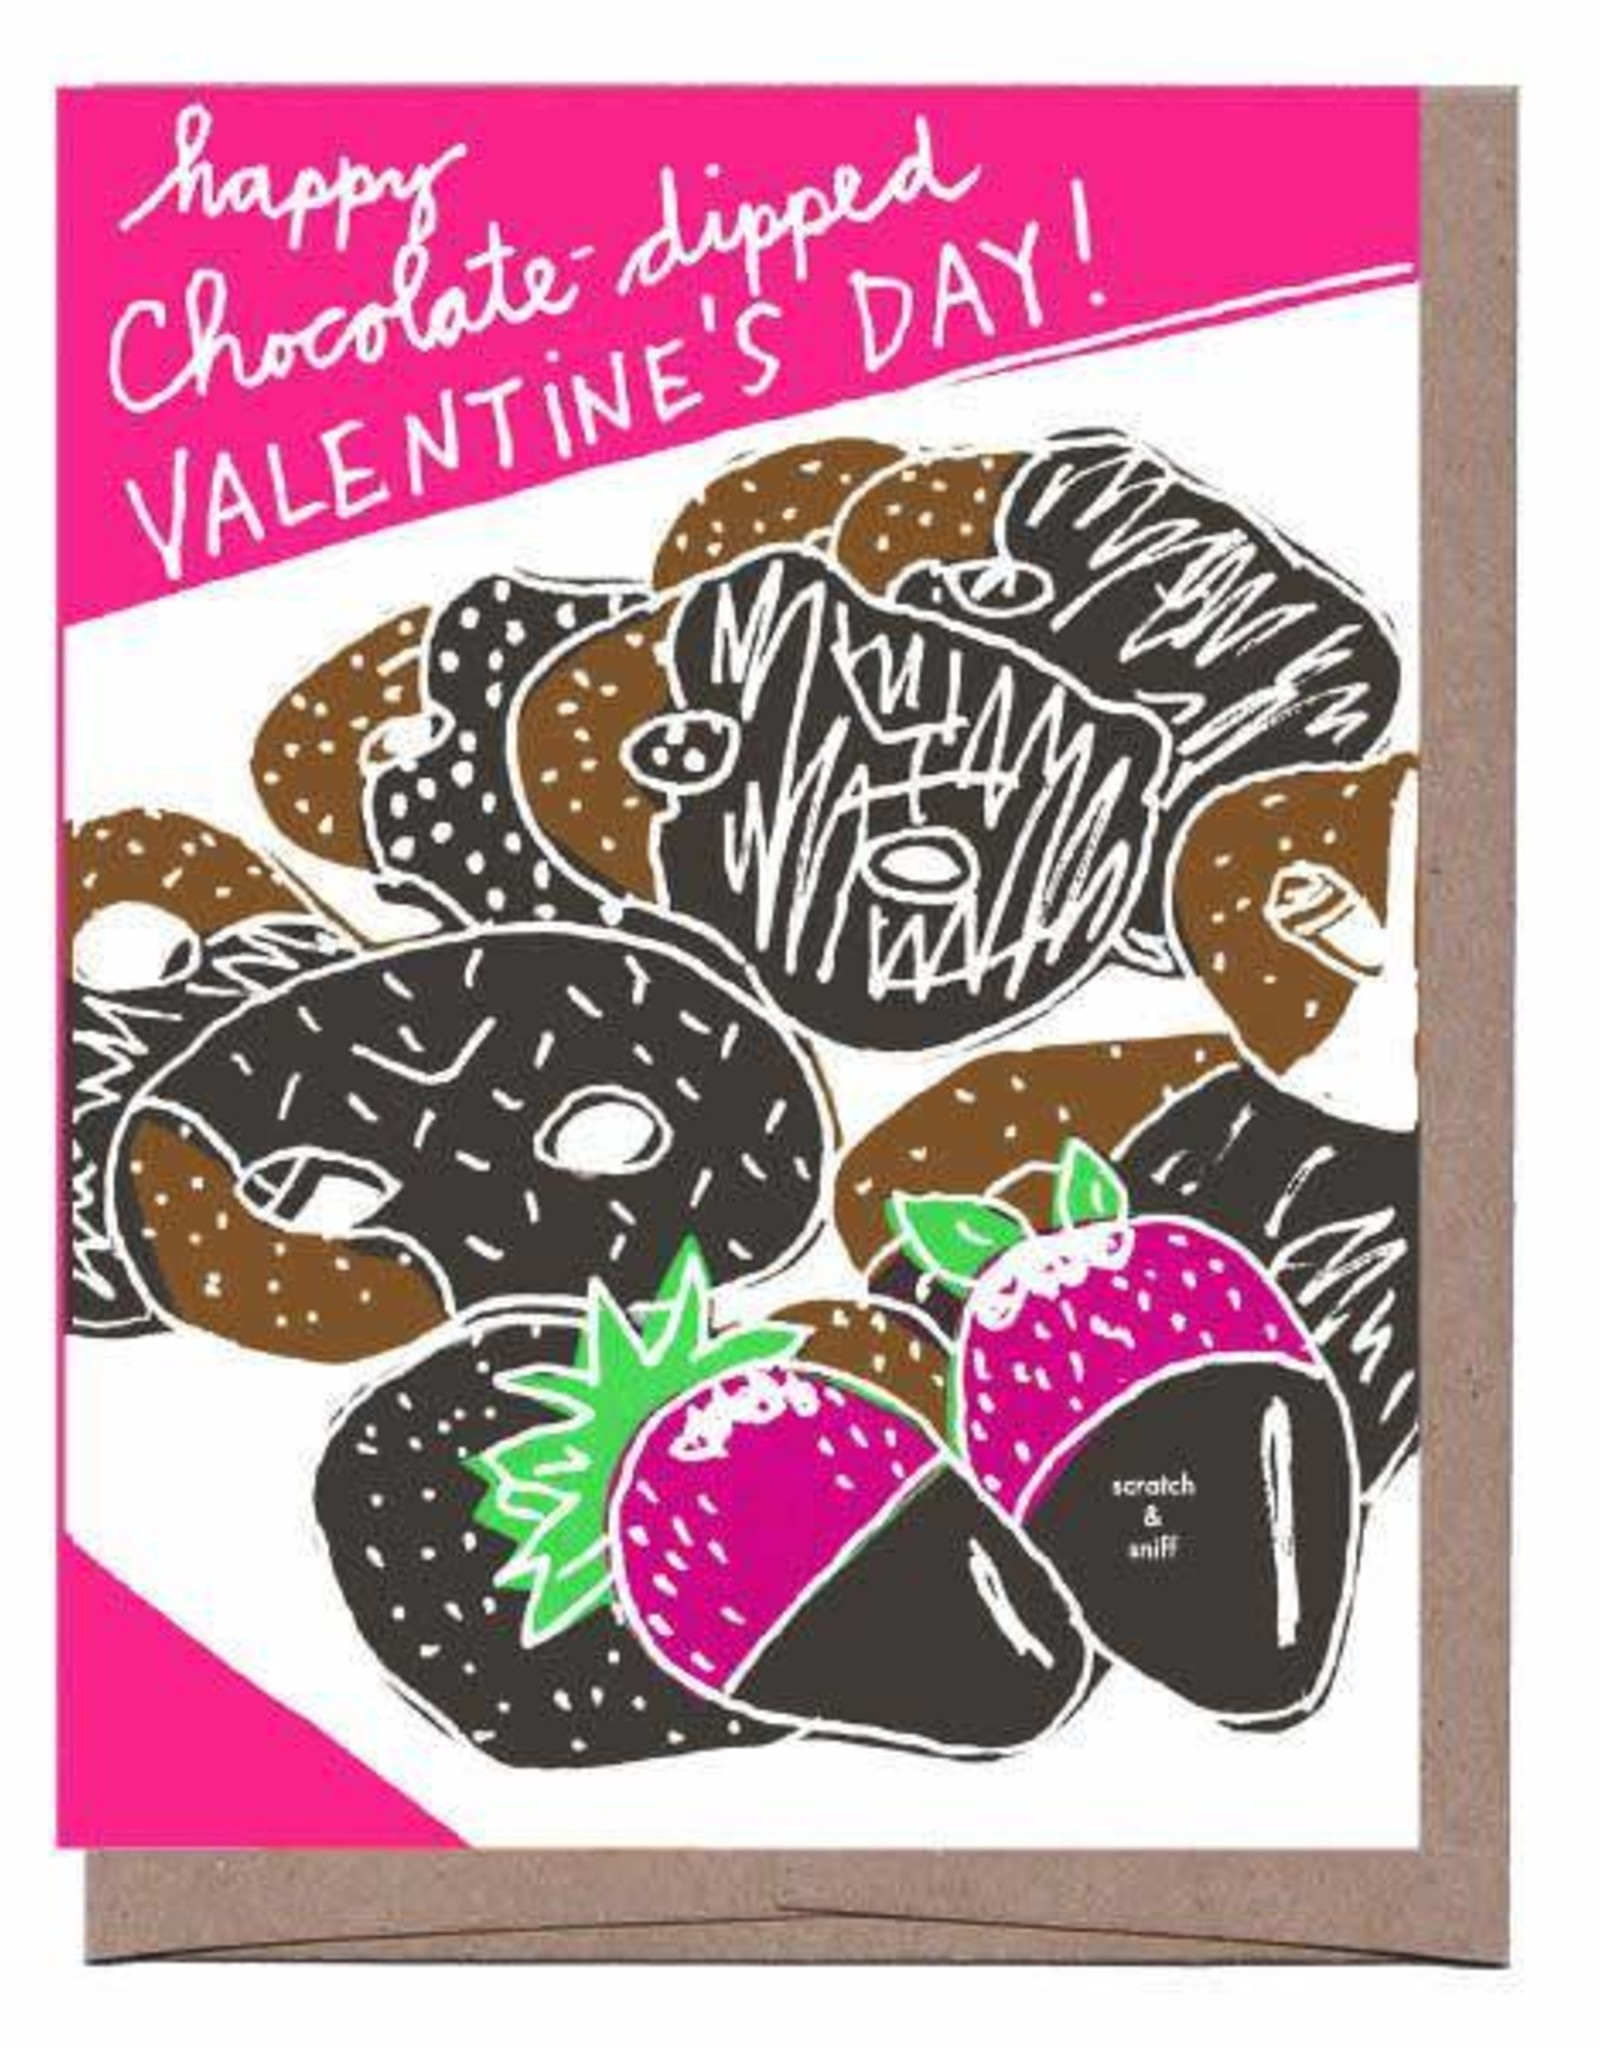 Happy Chocolate Dipped Valentine's Day Greeting Card